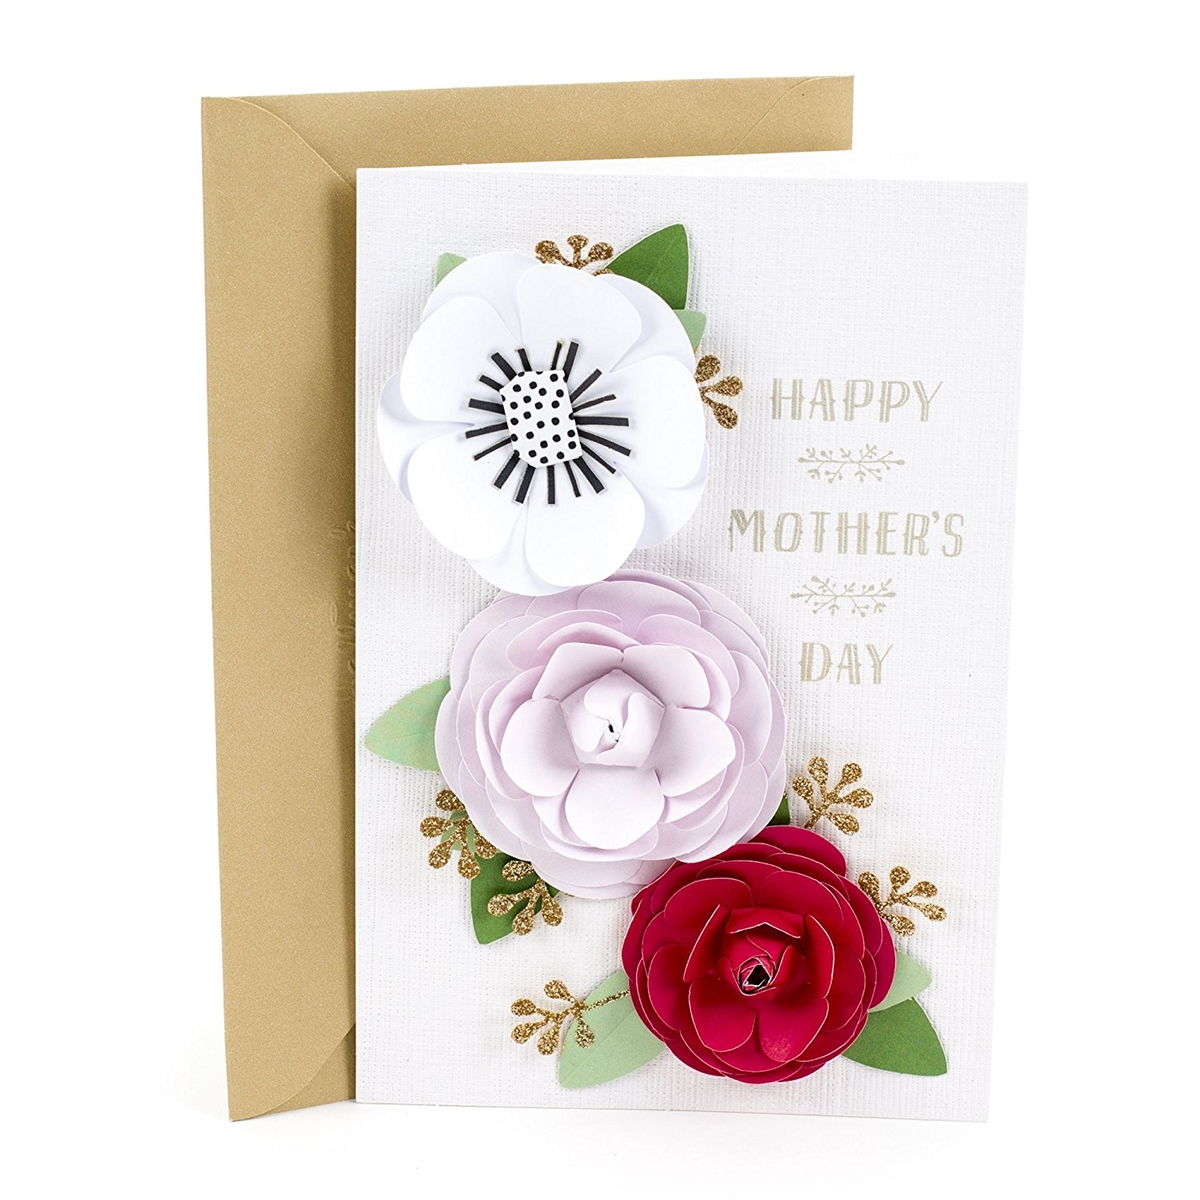 American Greetings Mothers Day Cards Images Greetings Card Design